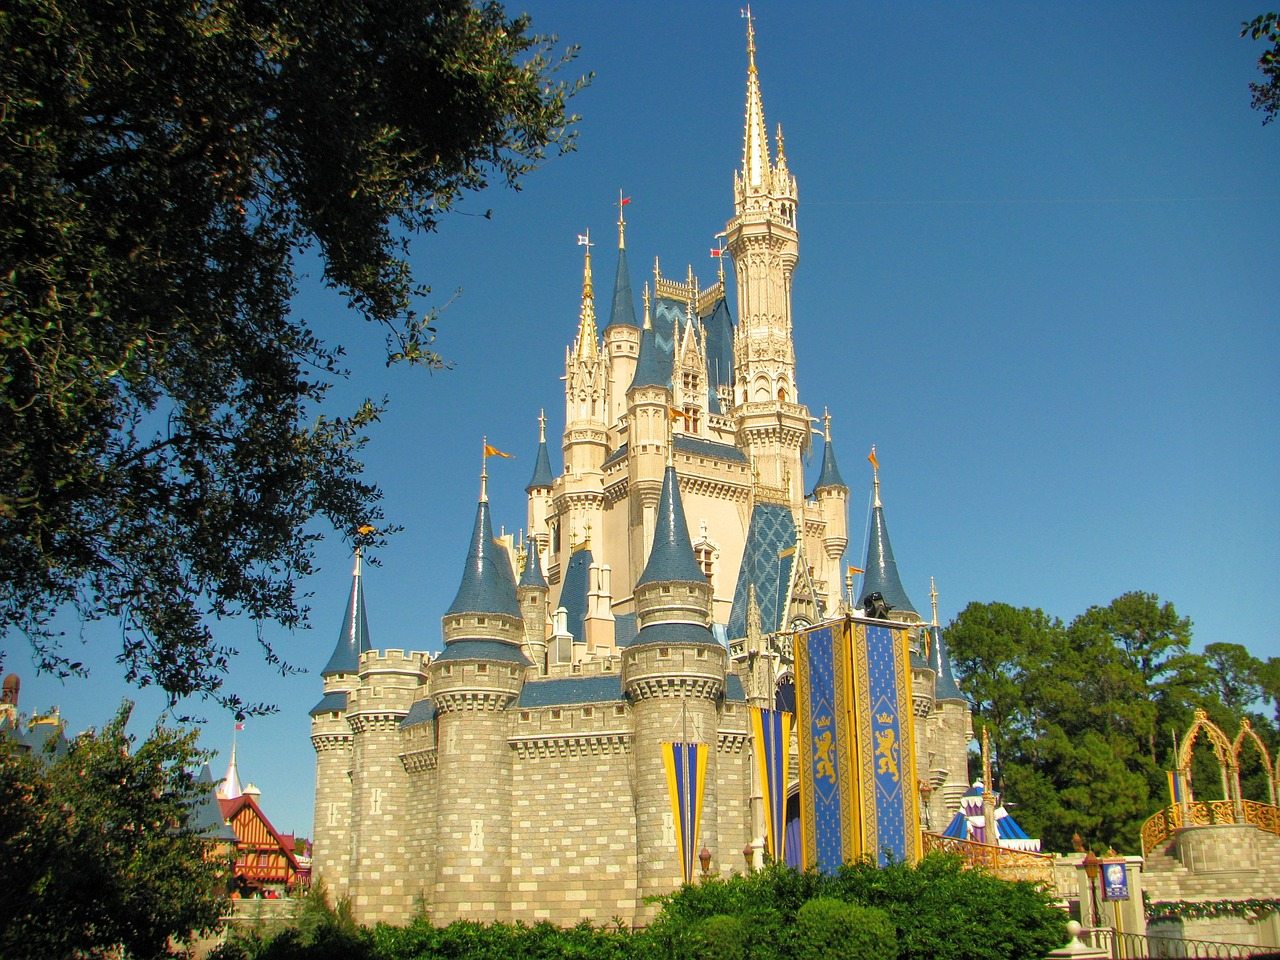 Educational Fund for Disney Employees